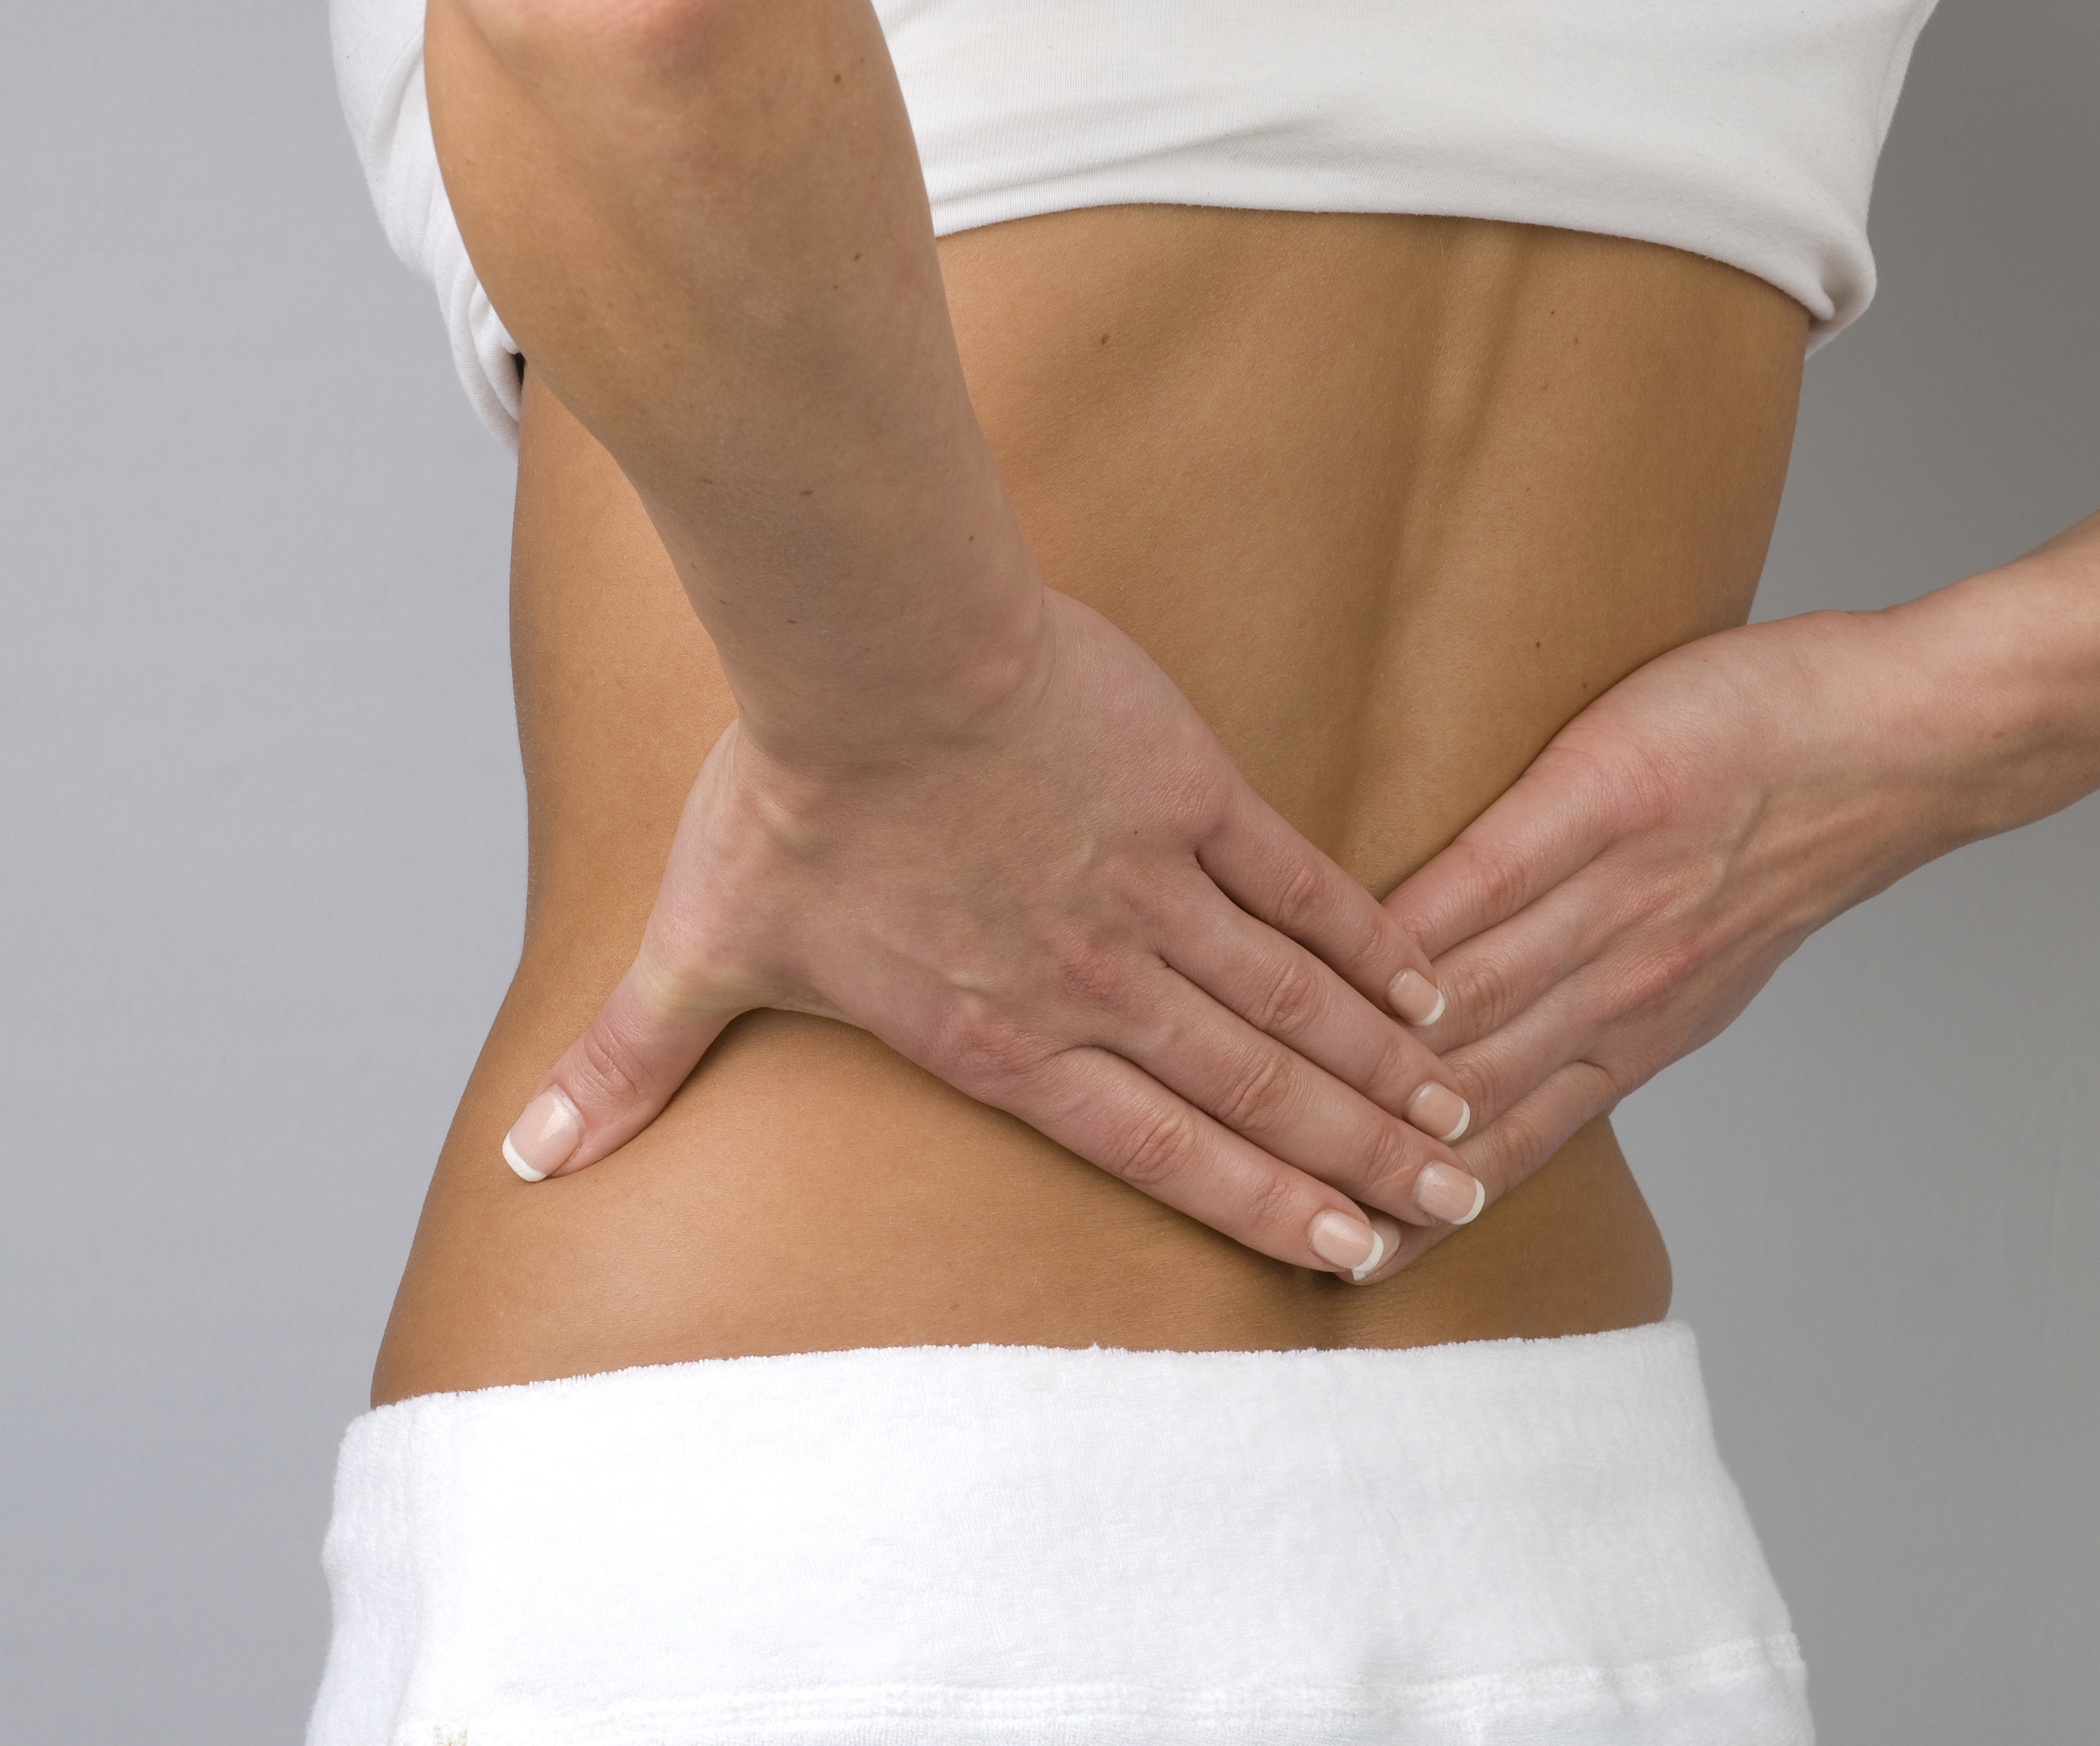 A sore back can be soothed with massage